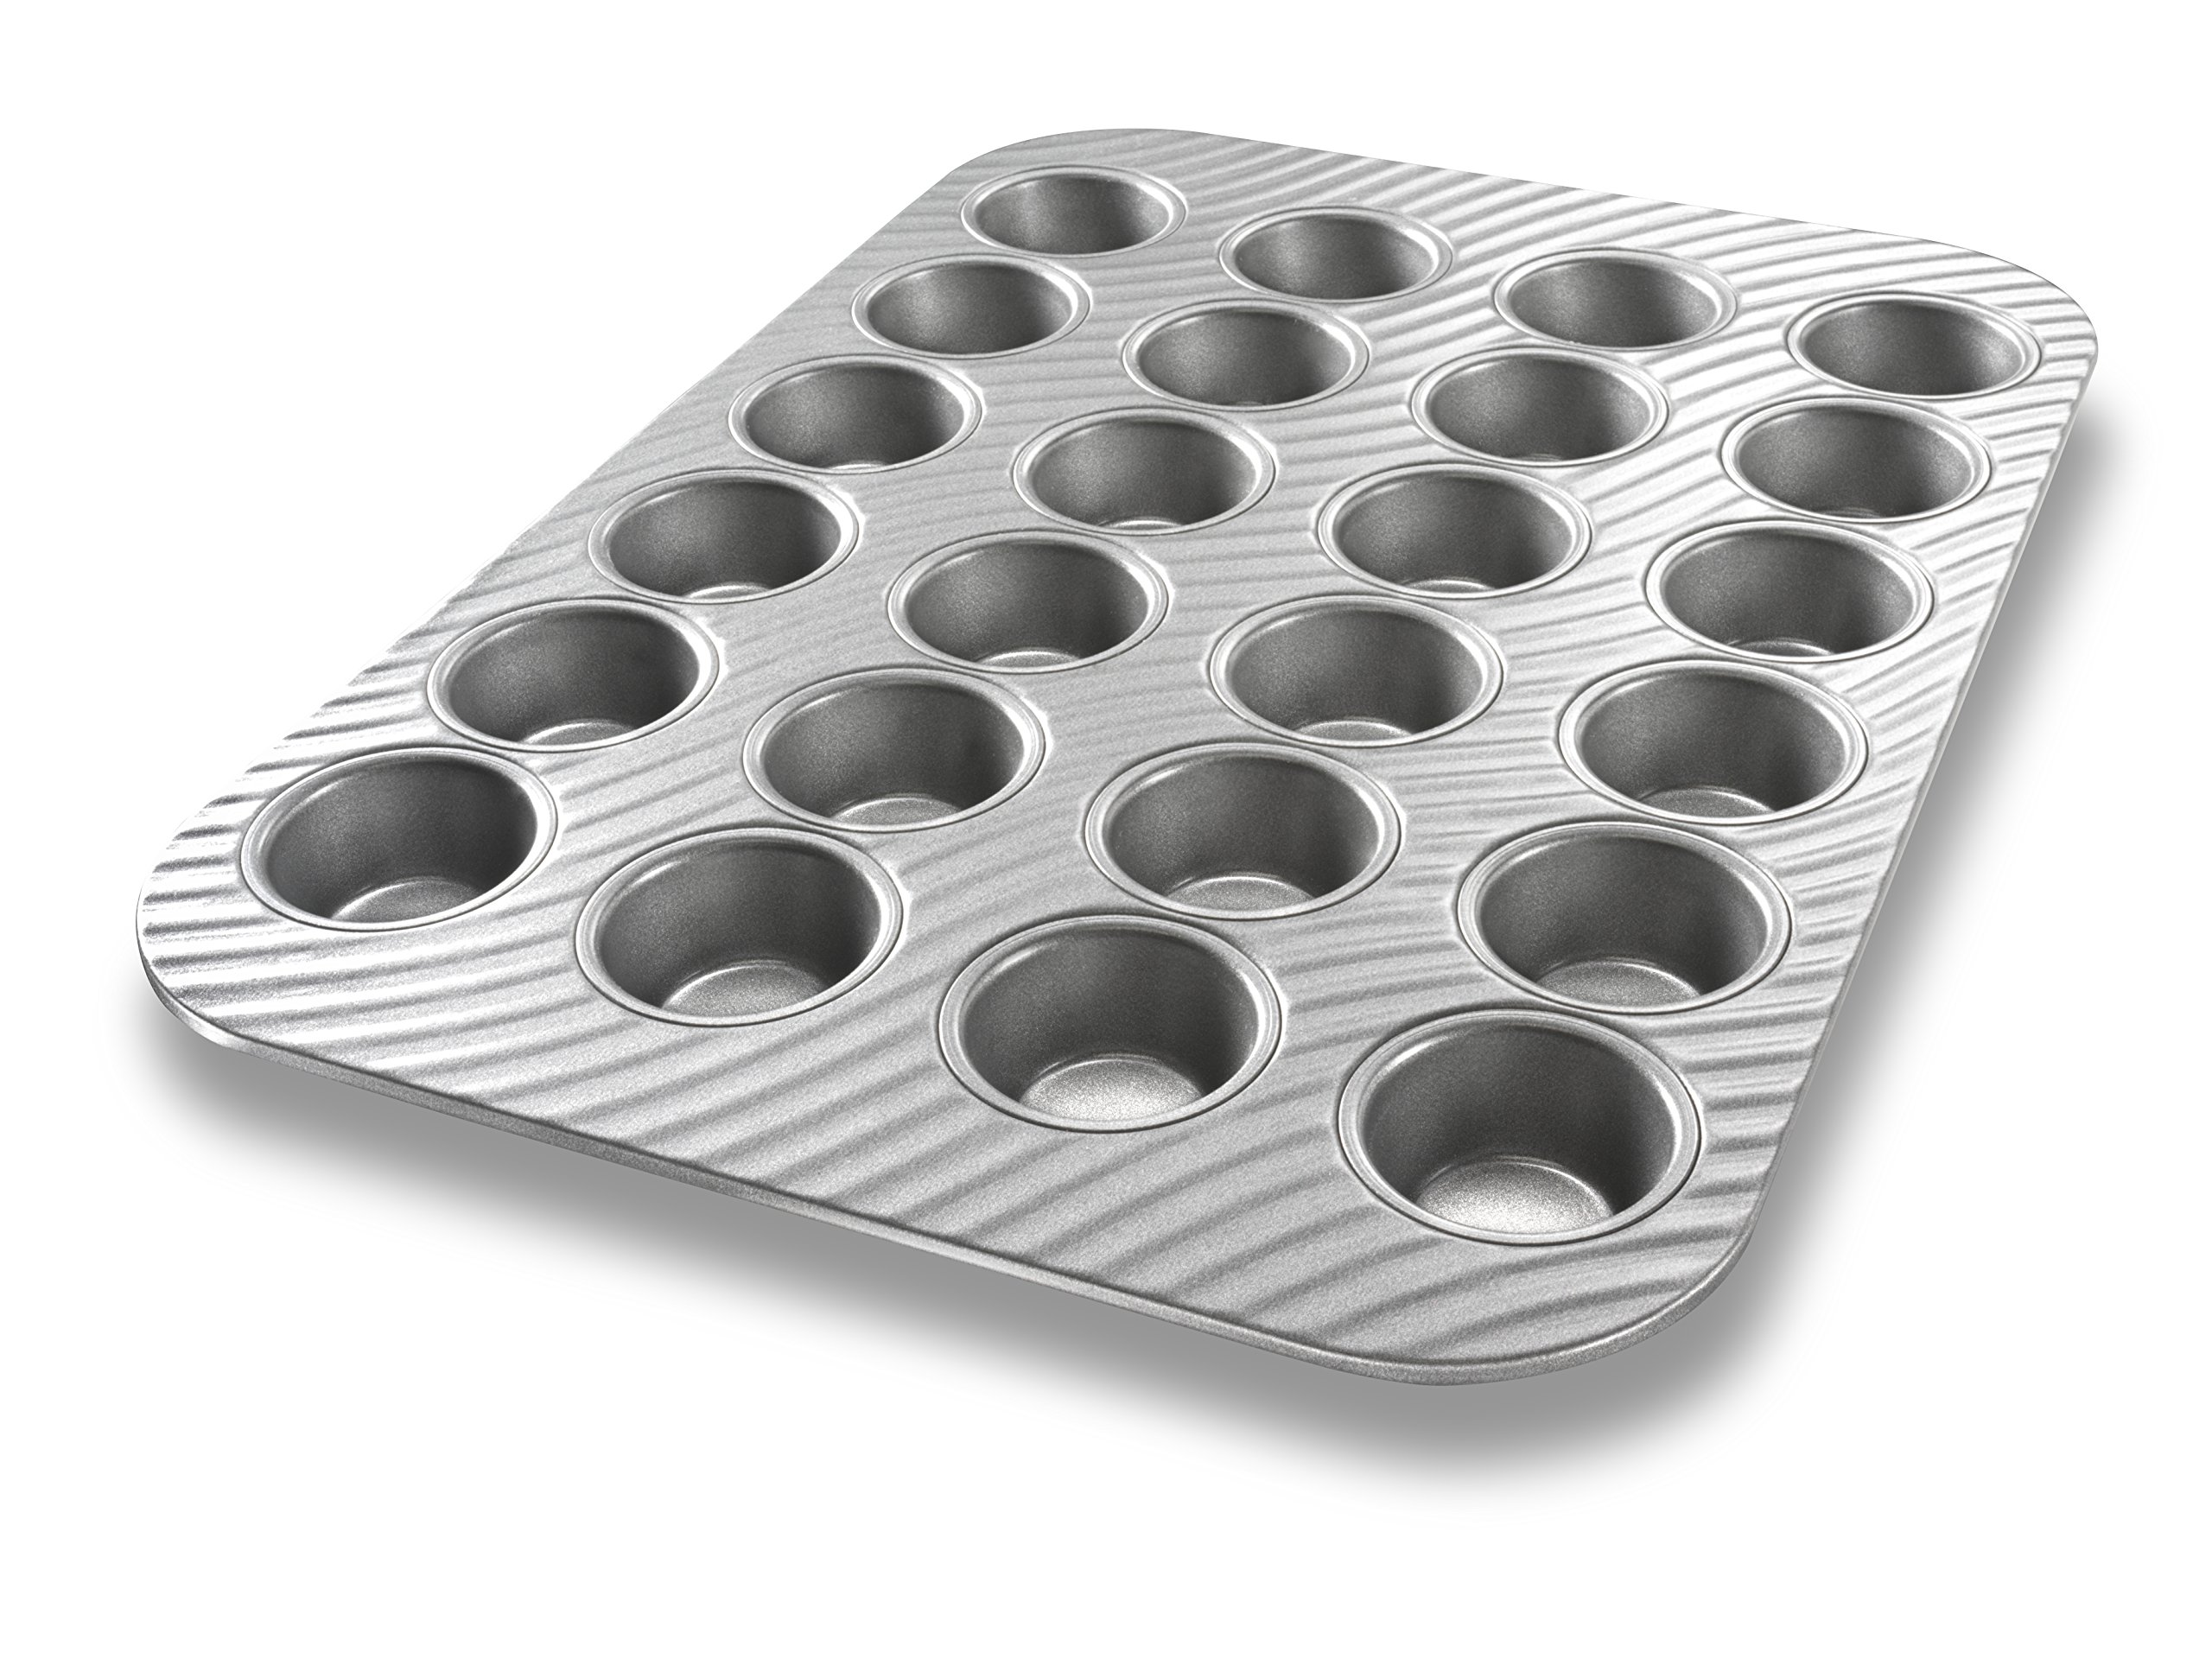 USA Pan Patriot Pan Bakeware Aluminized Steel 24 Cup Mini Muffin Pan